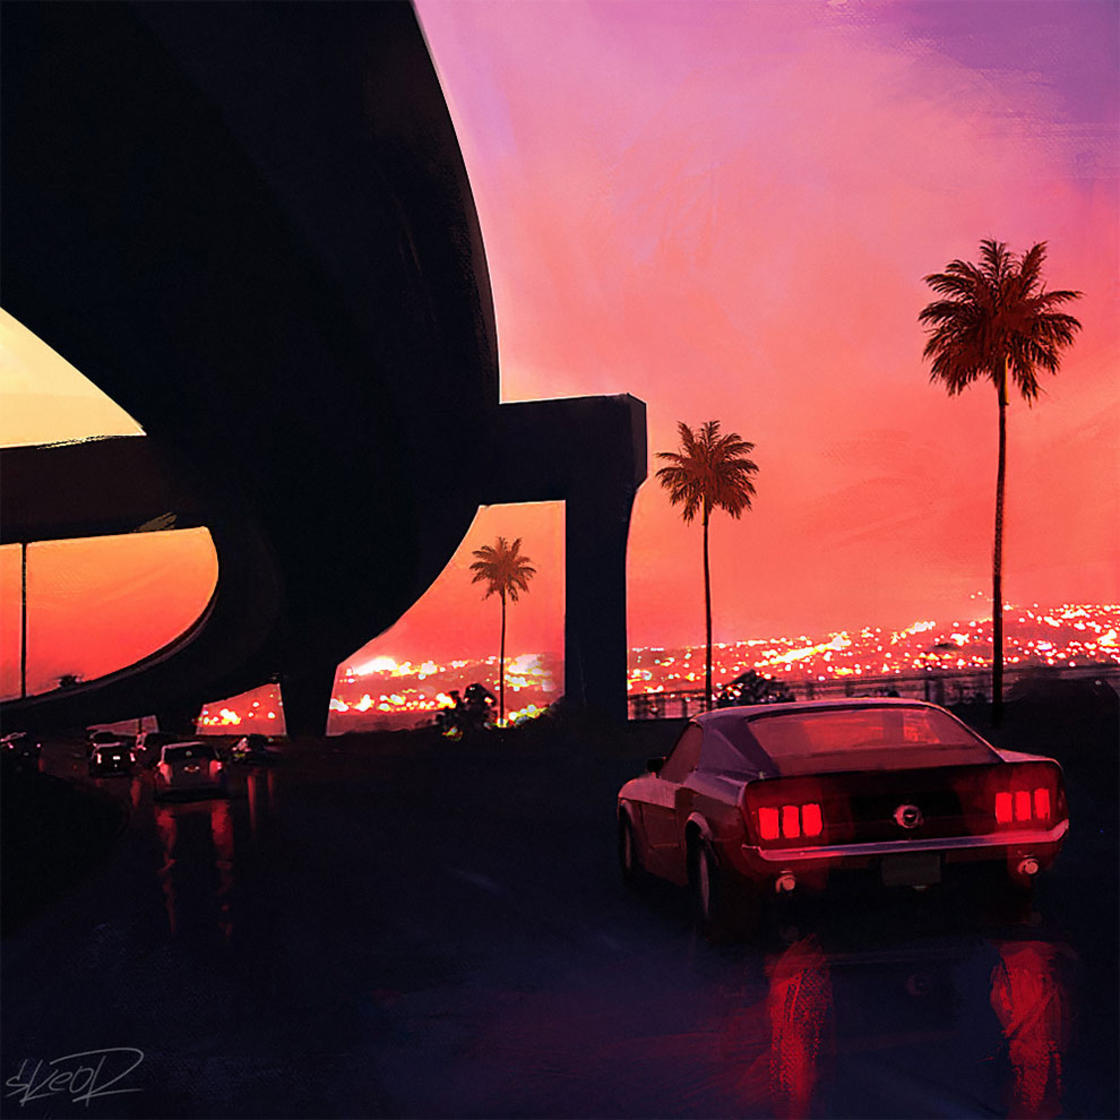 Chromatic Horizon – The dark and futuristic illustrations by Tony Skeor